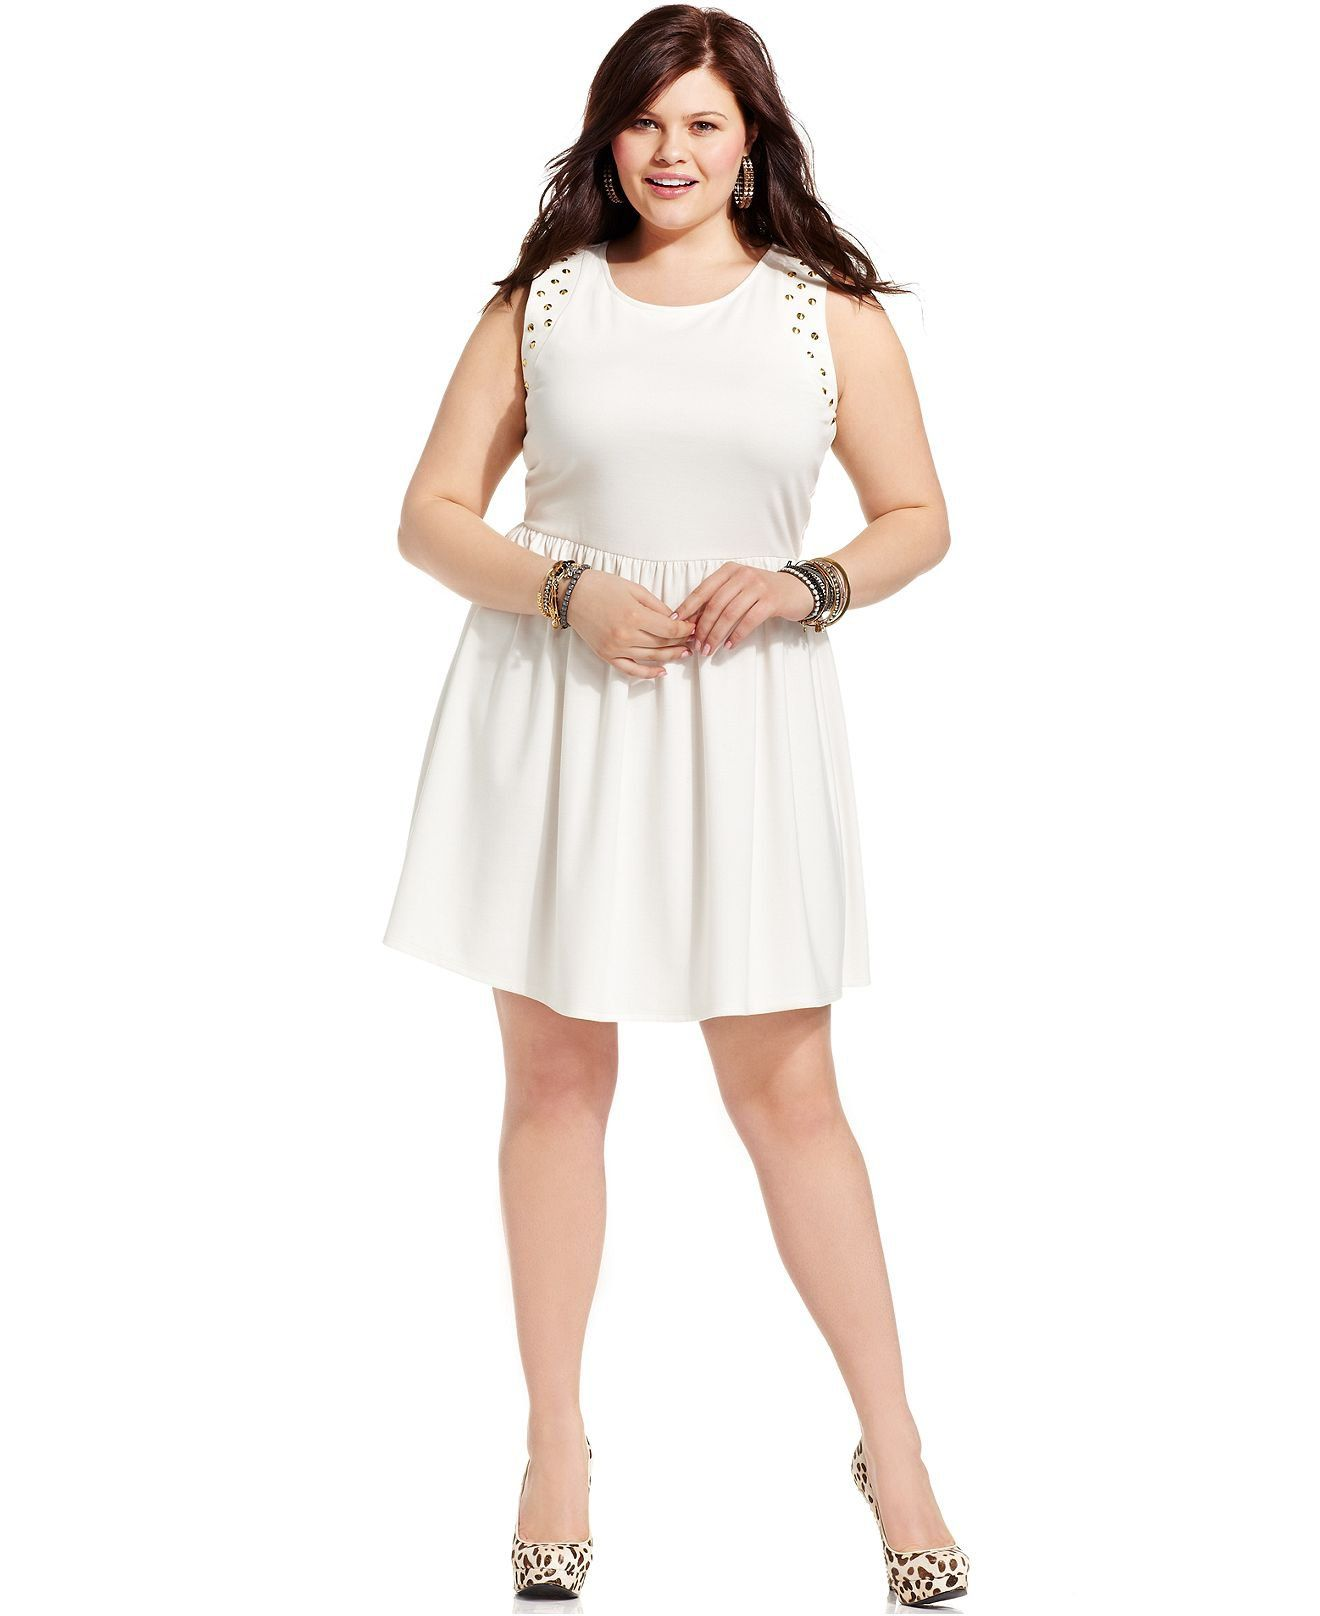 Plus Size Cocktail Dresses: Shop Plus Size Cocktail Dresses ...